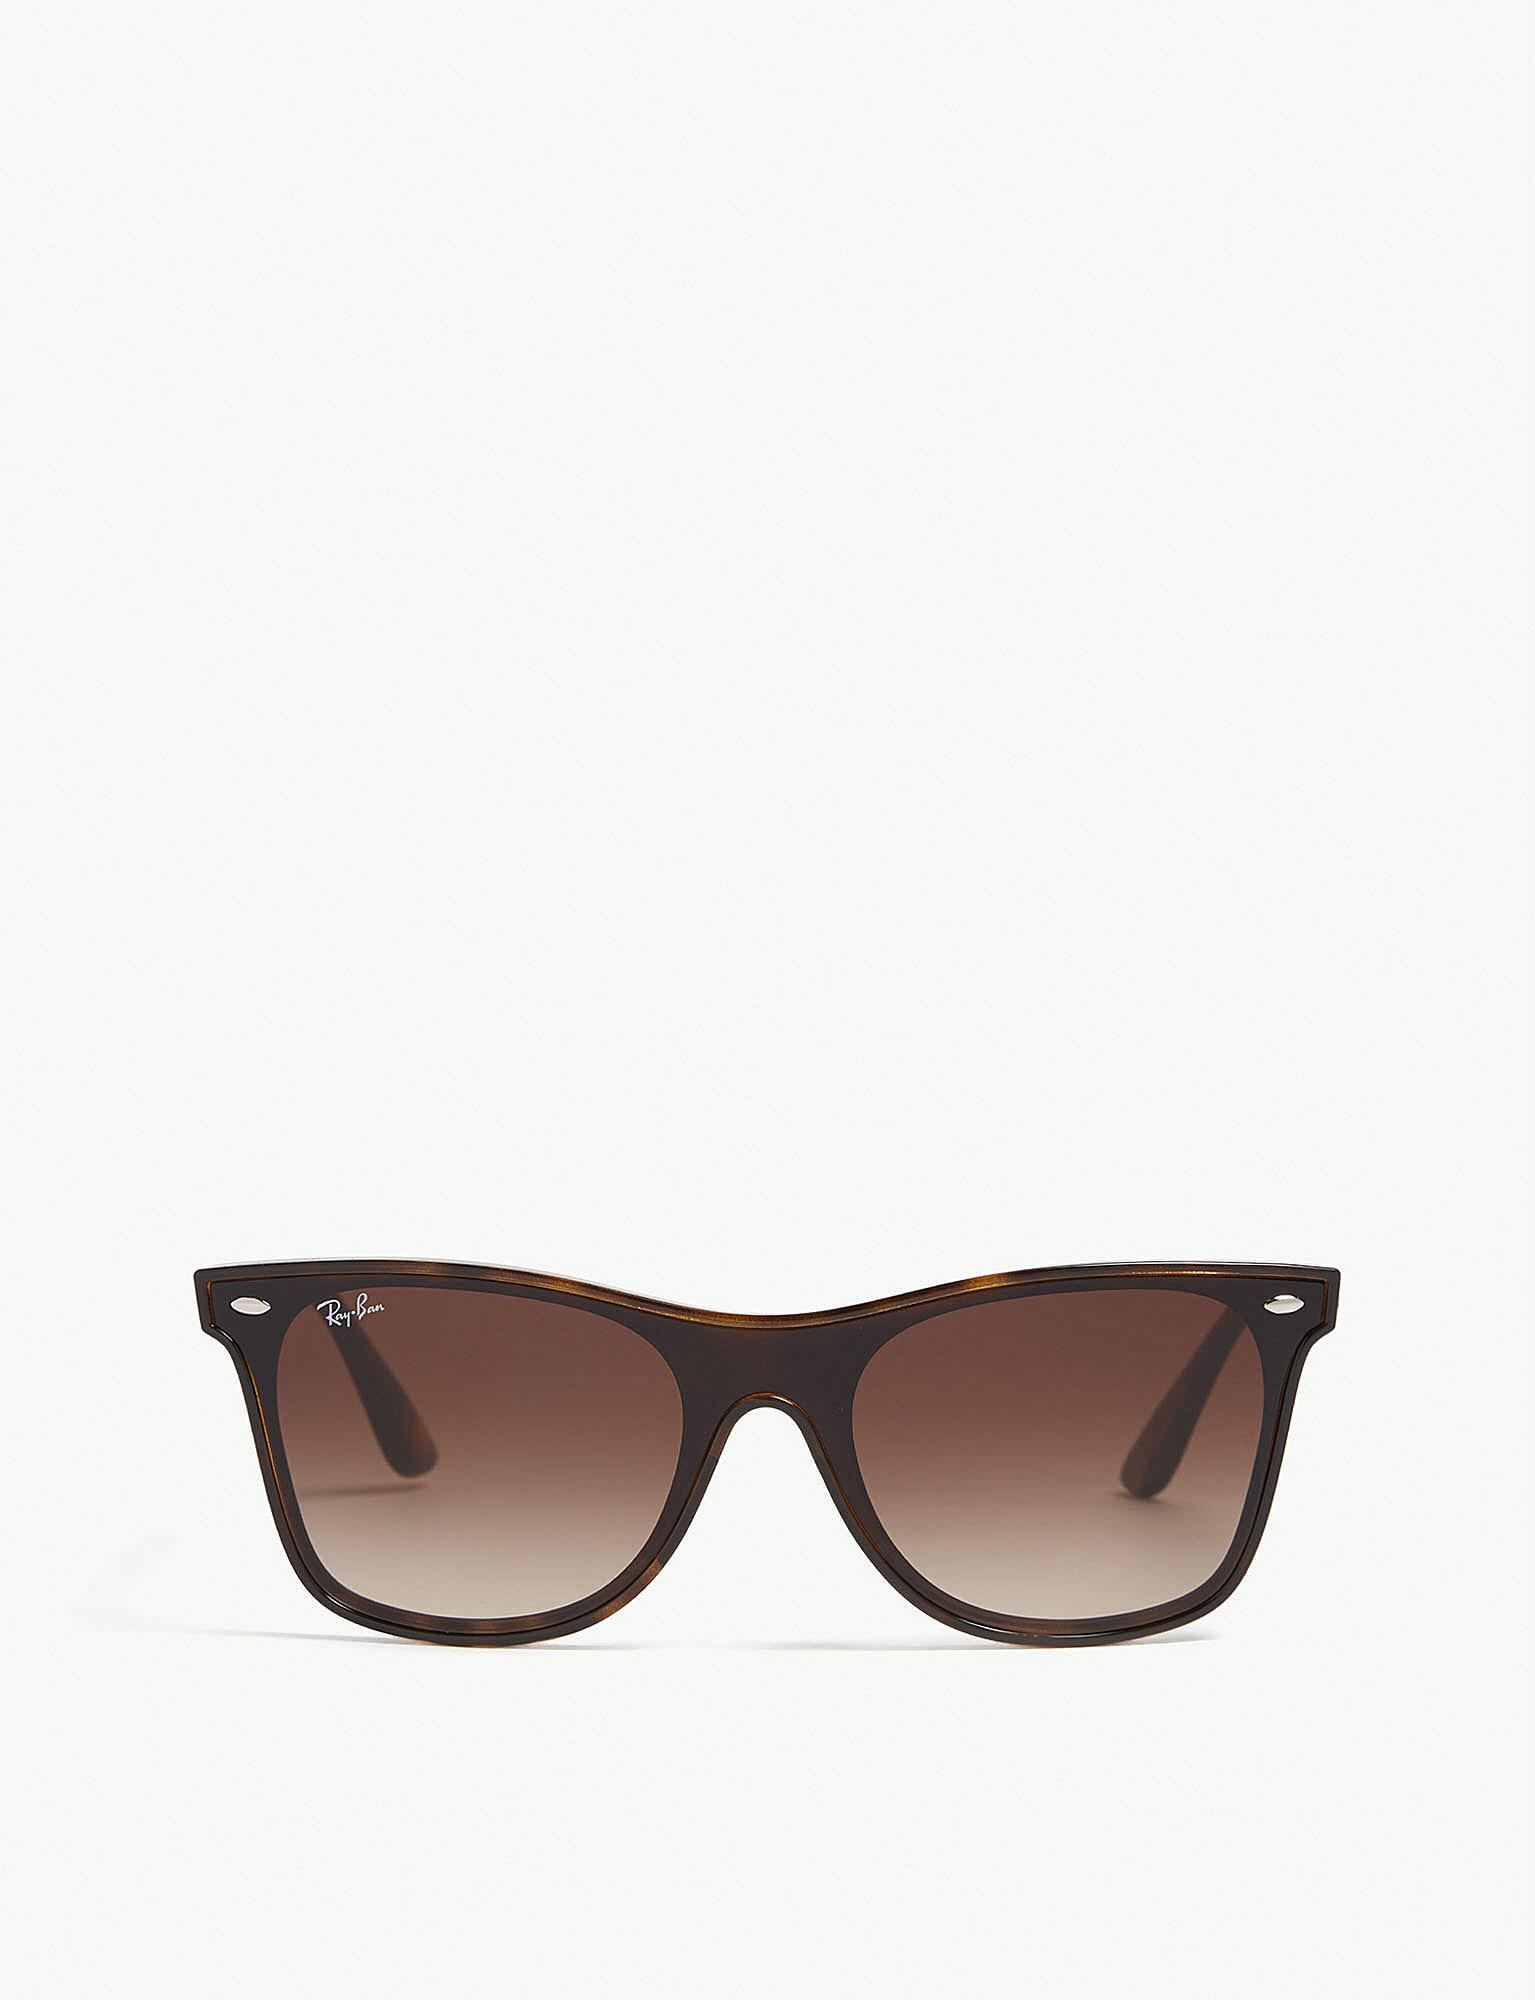 4615ebd3fd9 Lyst - Ray-Ban Rb4440 Square-frame Sunglasses in Brown for Men